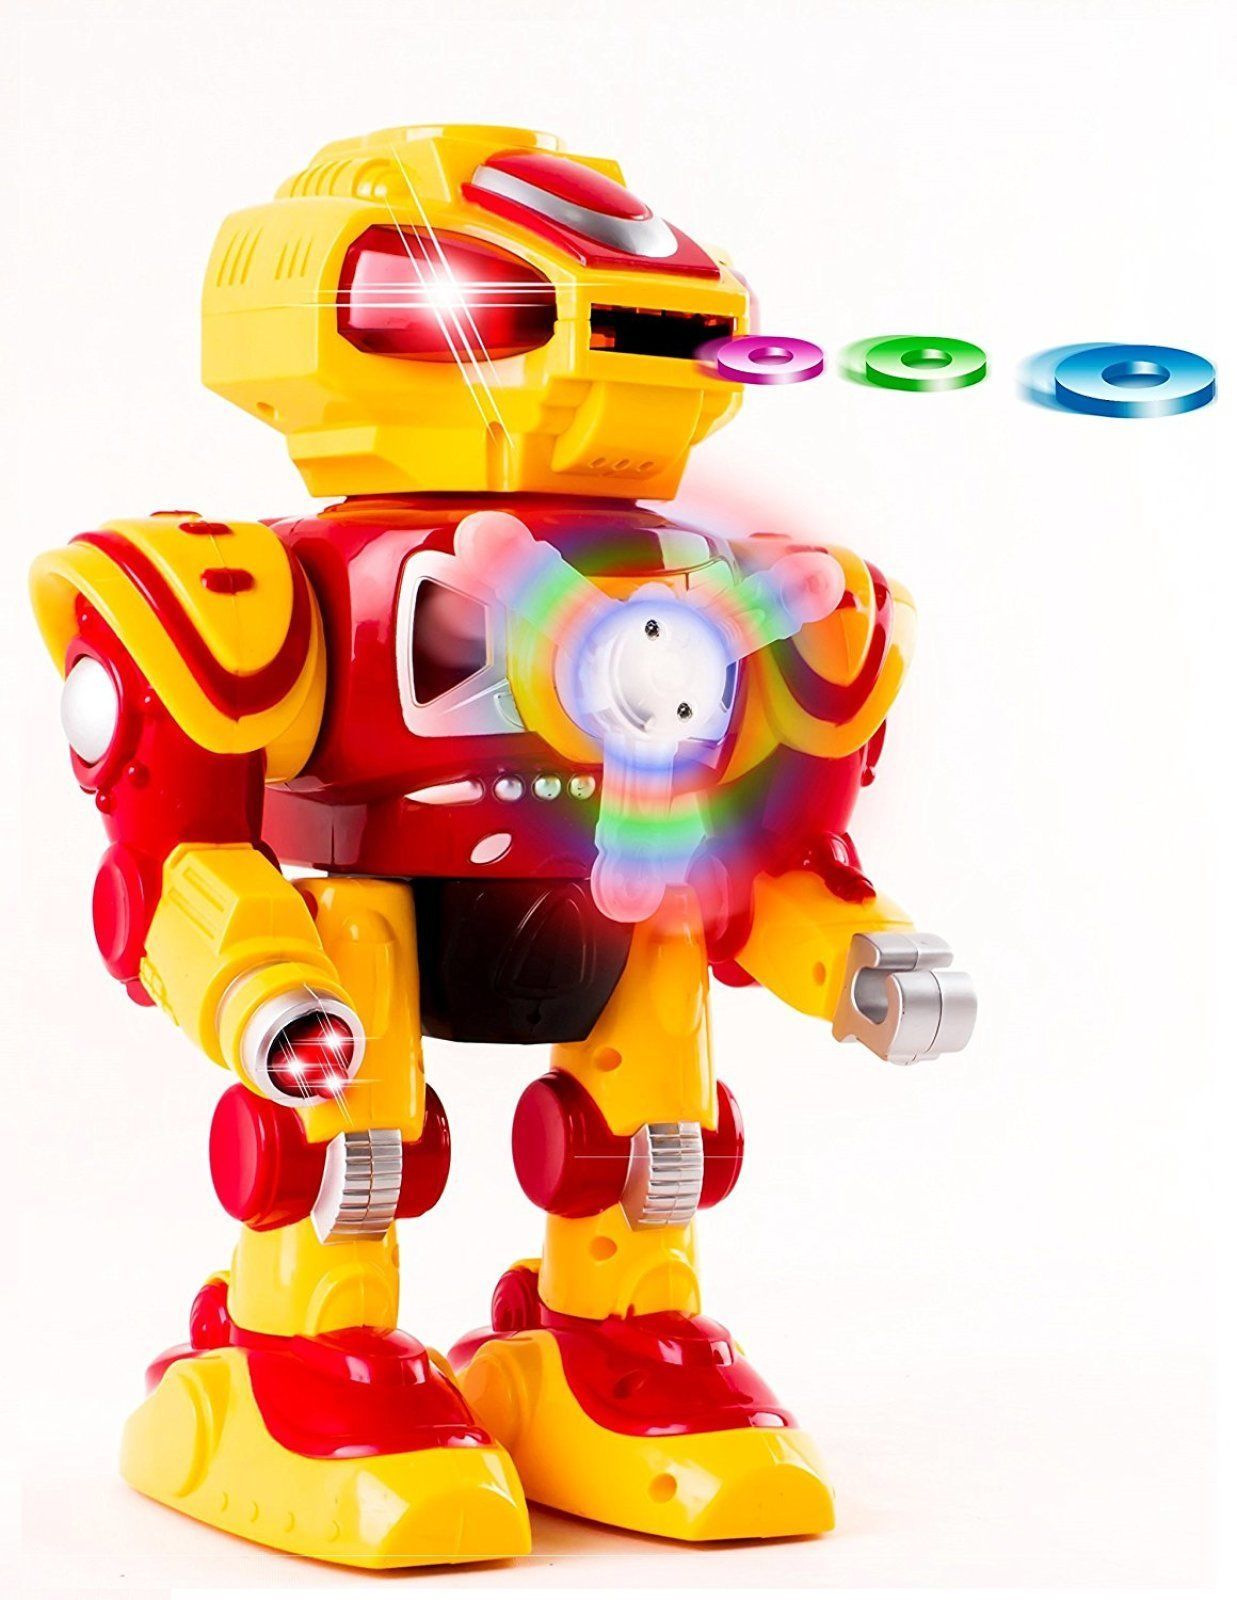 Toys for kids 8 and up  Toys For Boys Robot Kids Toddler Robot        Year Old Age